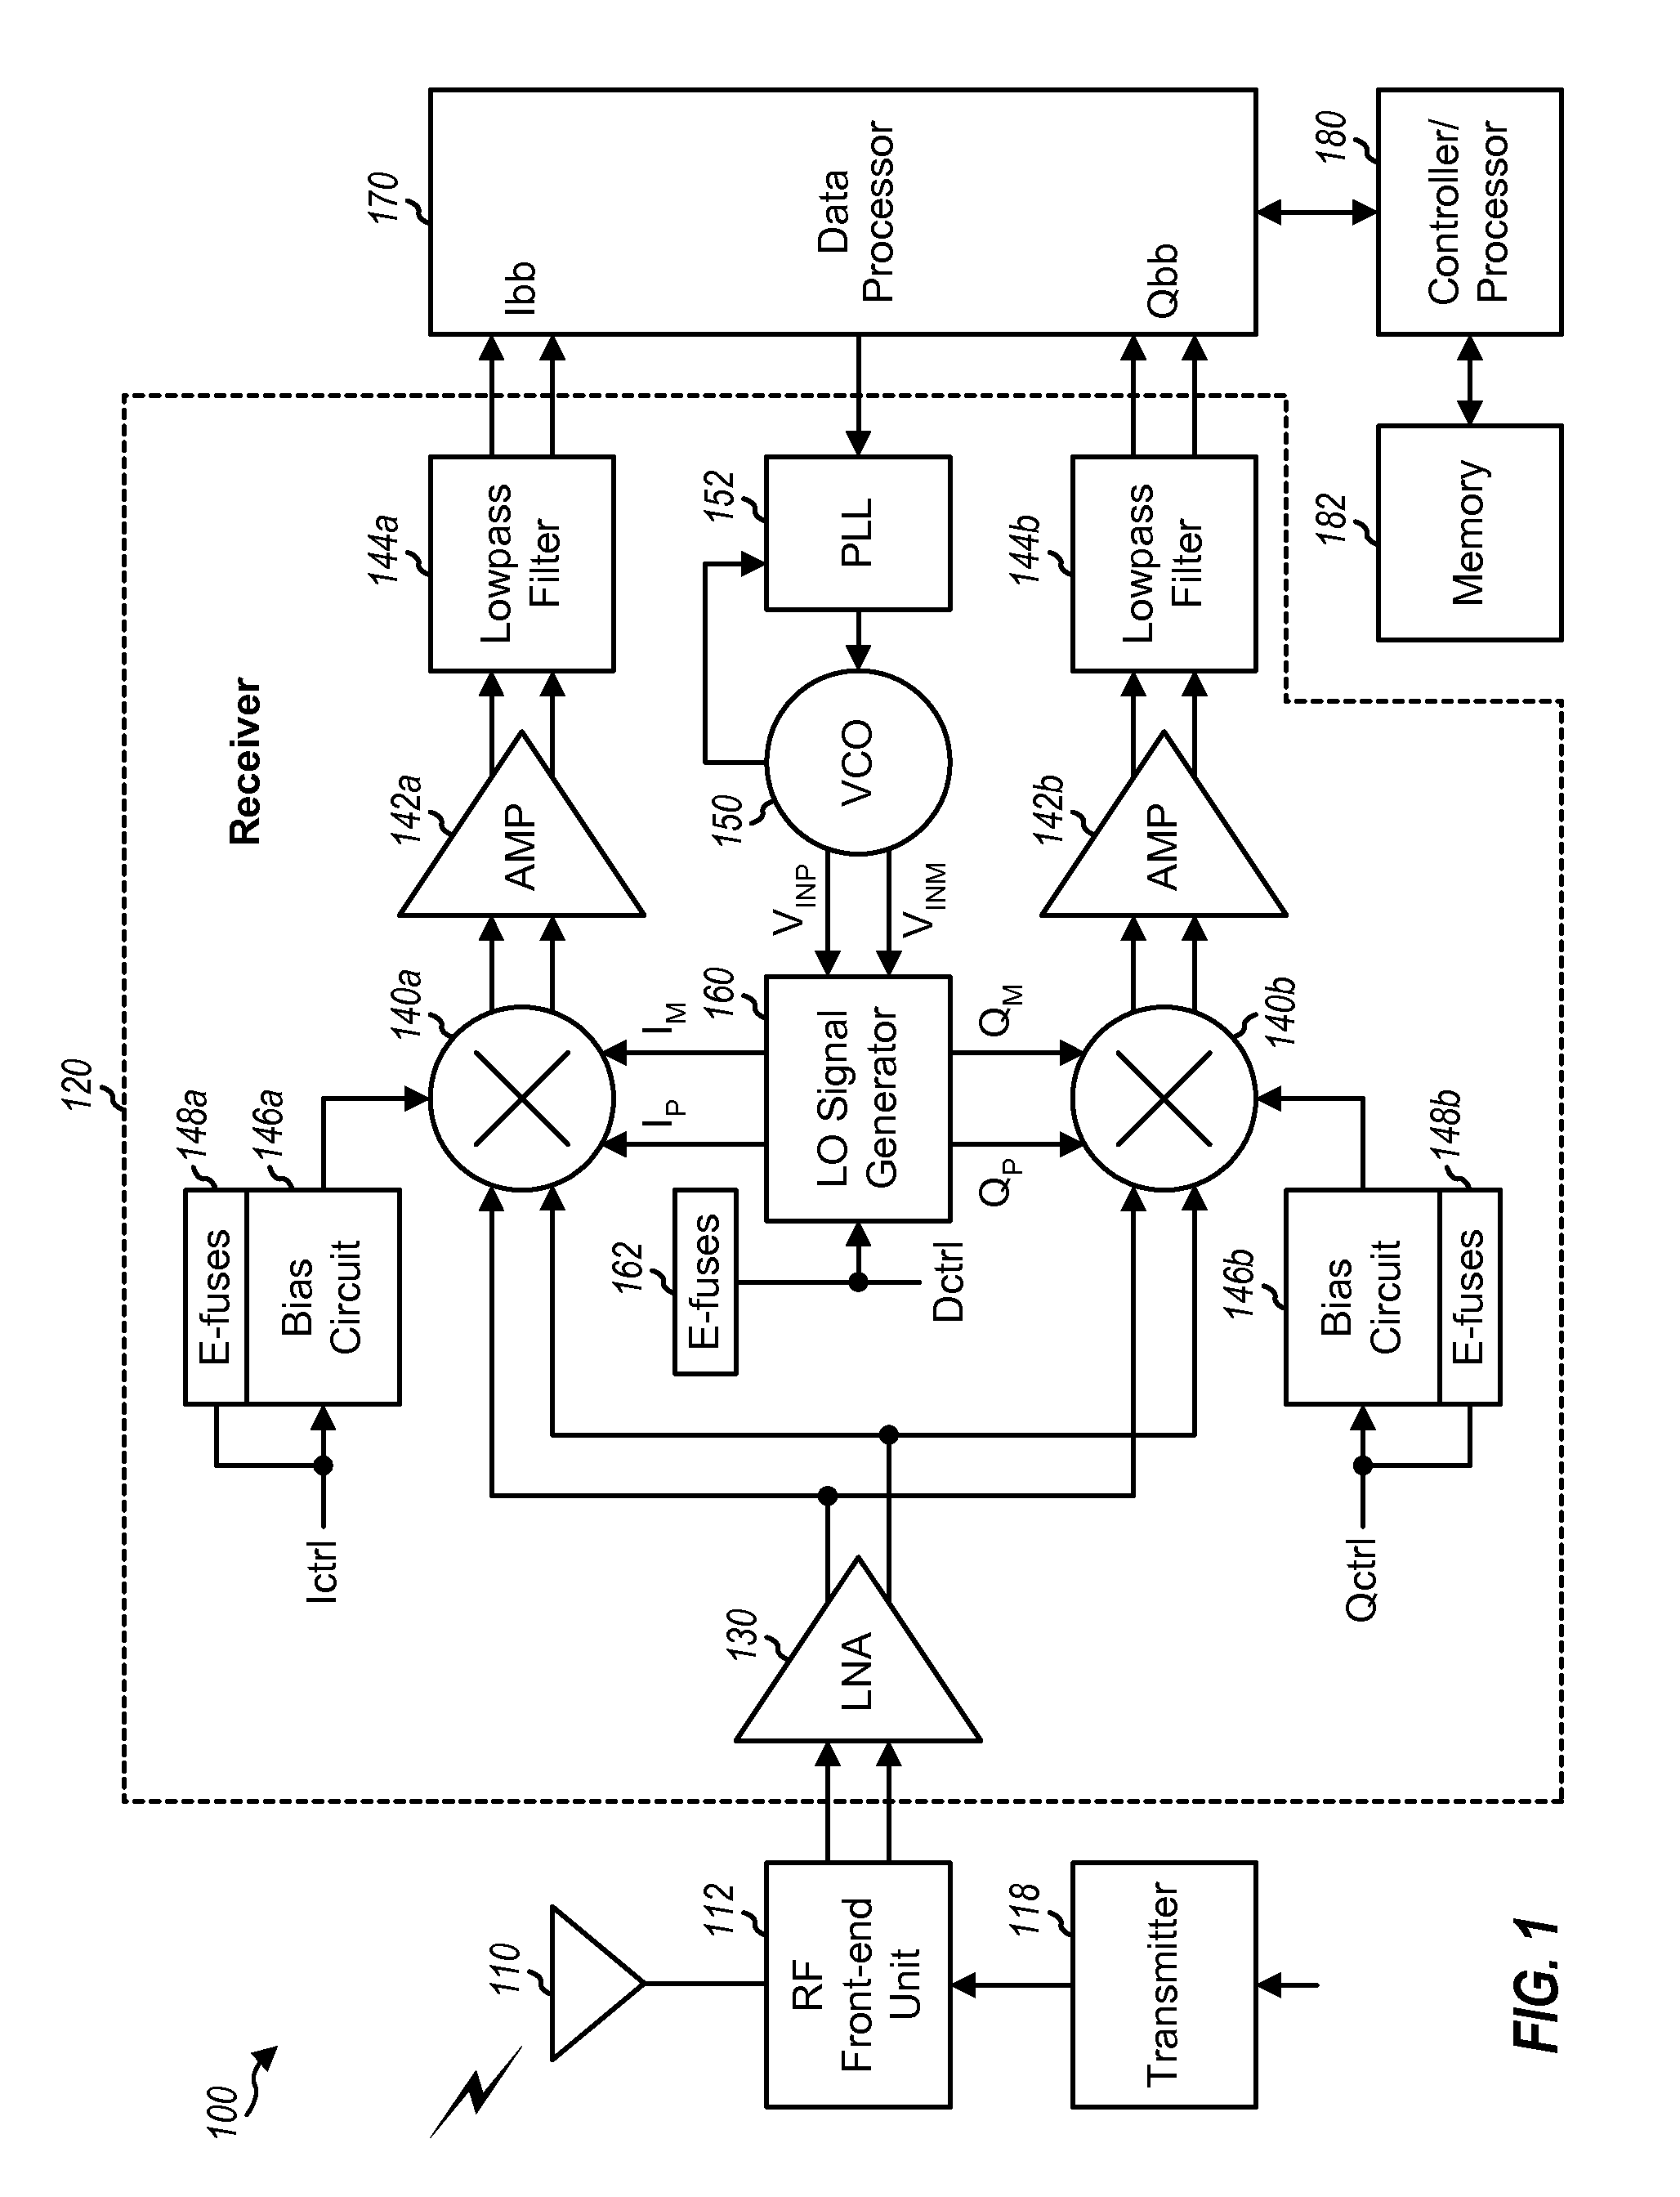 Patent Us8712357 Lo Generation With Deskewed Input Oscillator Tv Remote Control Jammer Circuit Diagram Super Drawing